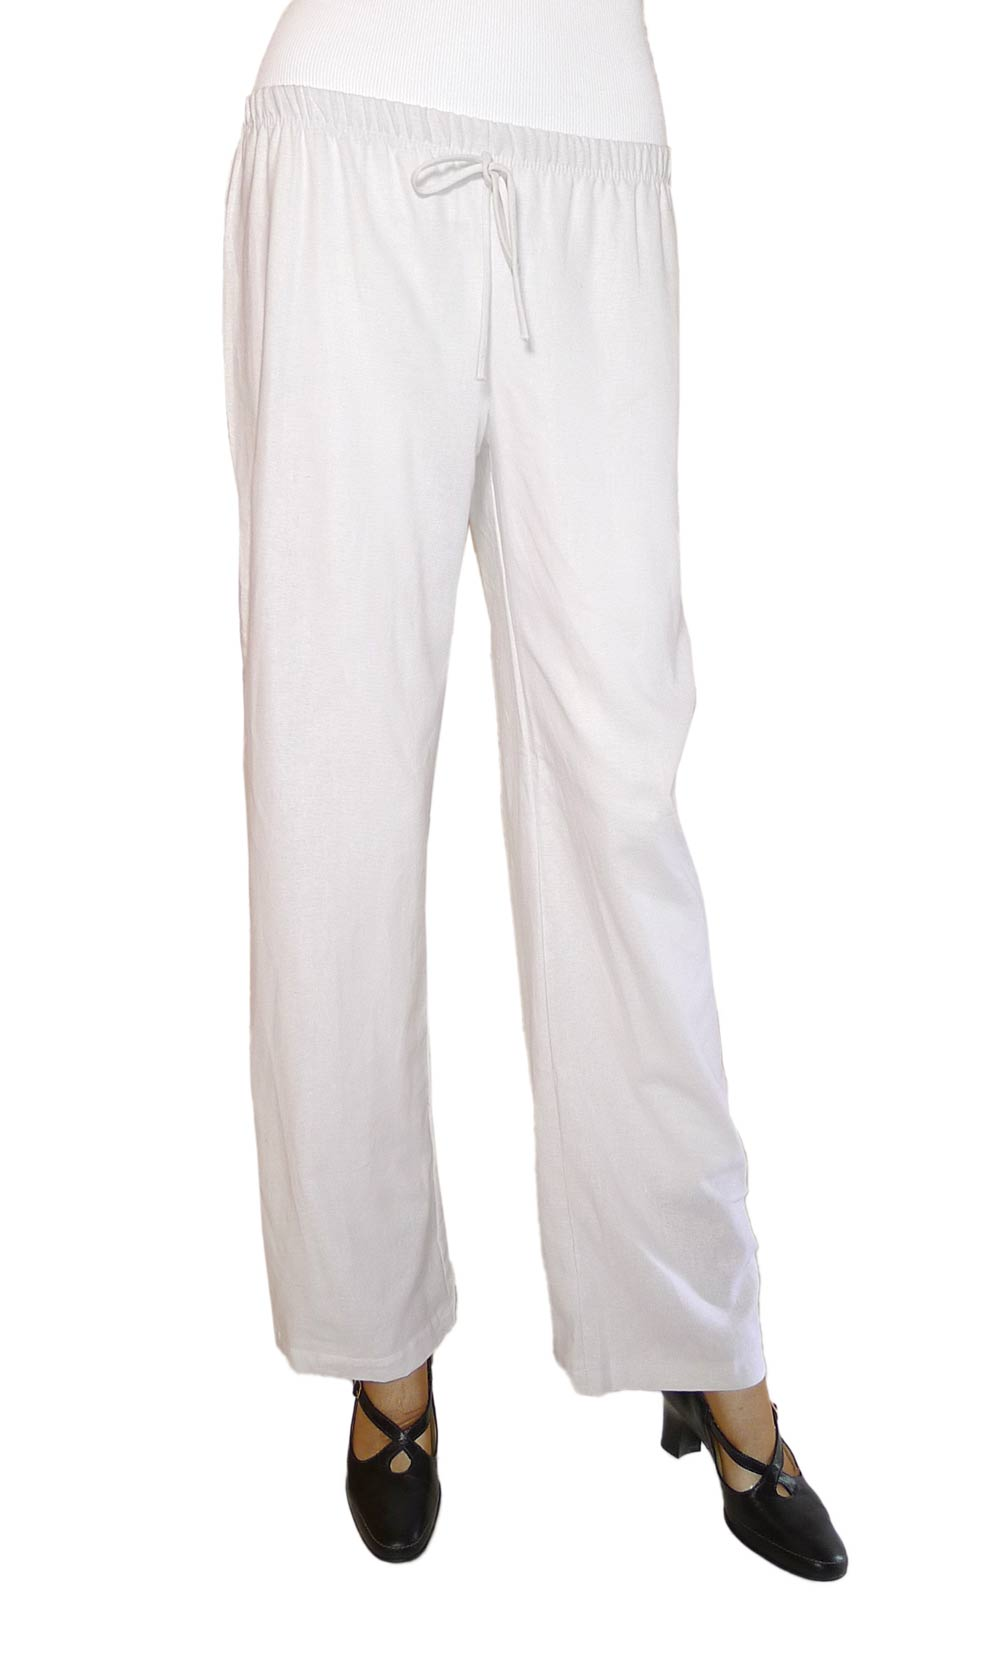 Cool White Linen Pants For Women Women39s White Linen Pants